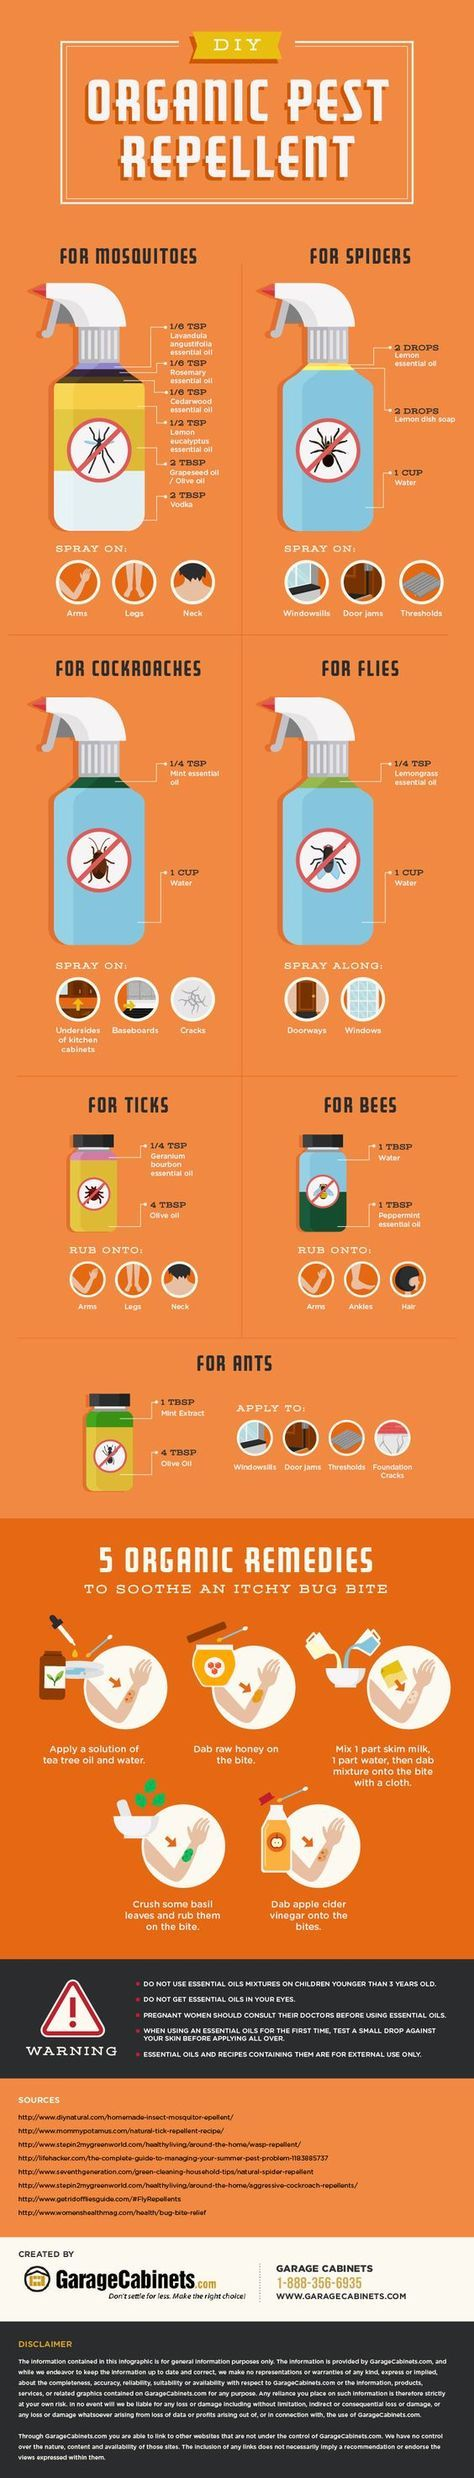 diy organic pest repellant keep bugs out this summer [ 474 x 2478 Pixel ]